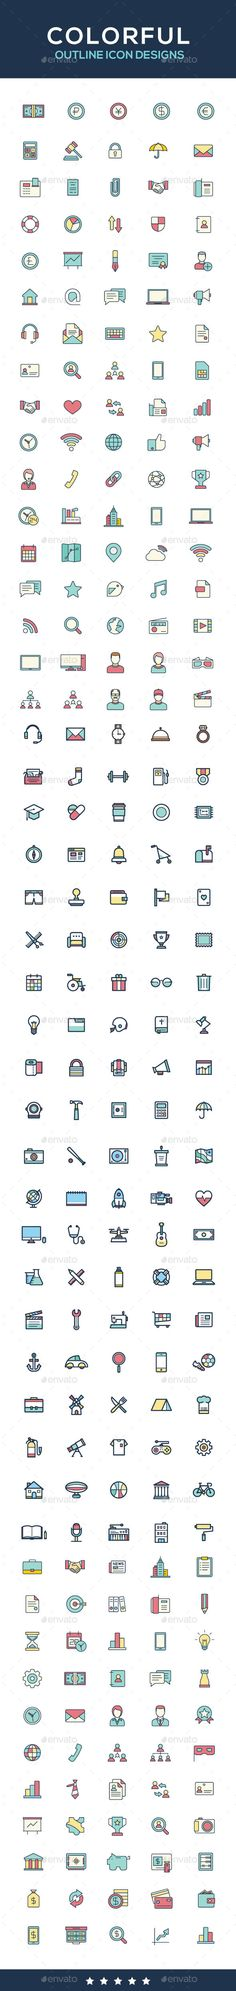 Icon set, Colorful icon designs, outline icons  — PSD Template #money icons #app • Download ➝ https://graphicriver.net/item/icon-set-colorful-icon-designs-outline-icons/18184768?ref=pxcr